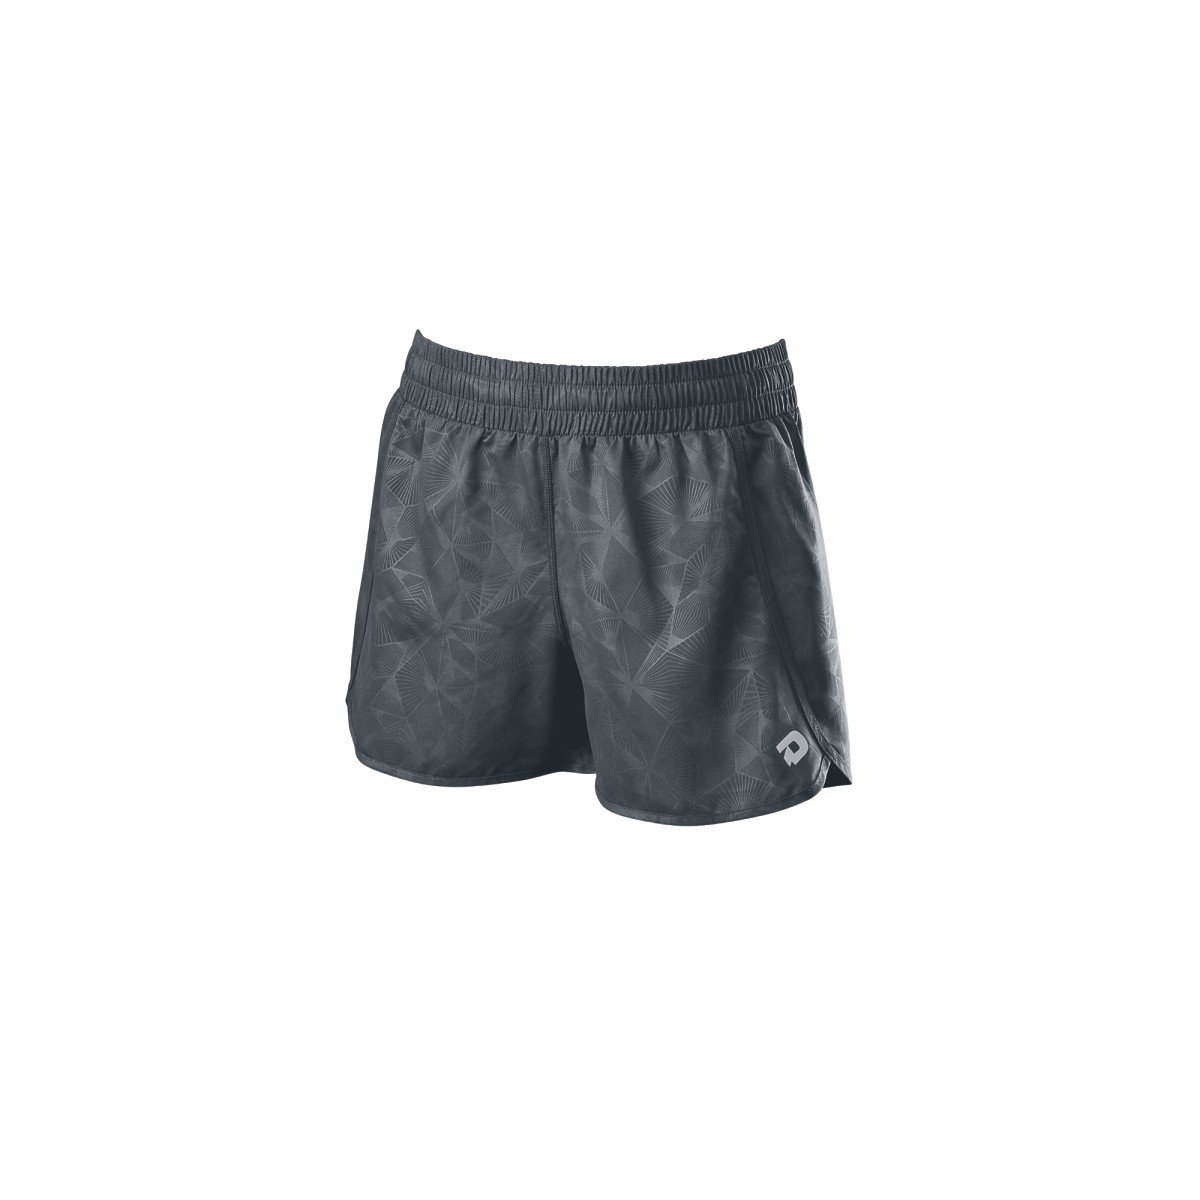 DeMarini Womens Training Shorts - Womens, Charcoal, Small